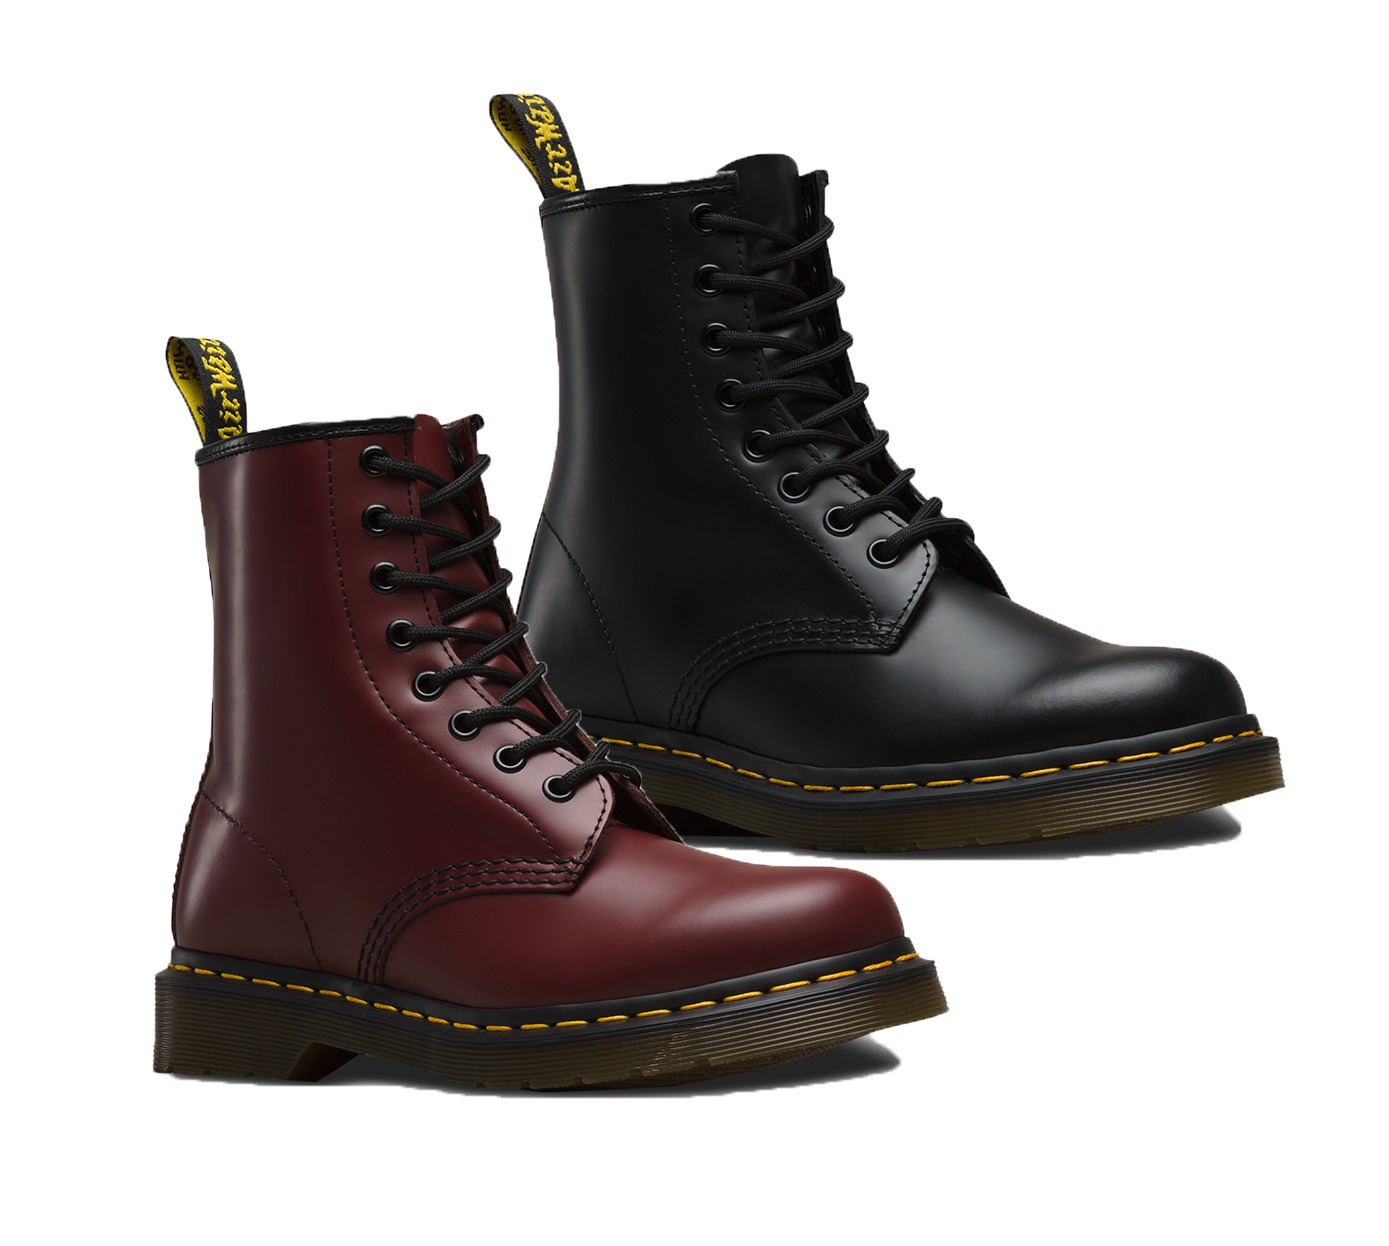 dr martens mens 1460 smooth leather casual shoes 8 eyelet boots lace up picclick uk. Black Bedroom Furniture Sets. Home Design Ideas